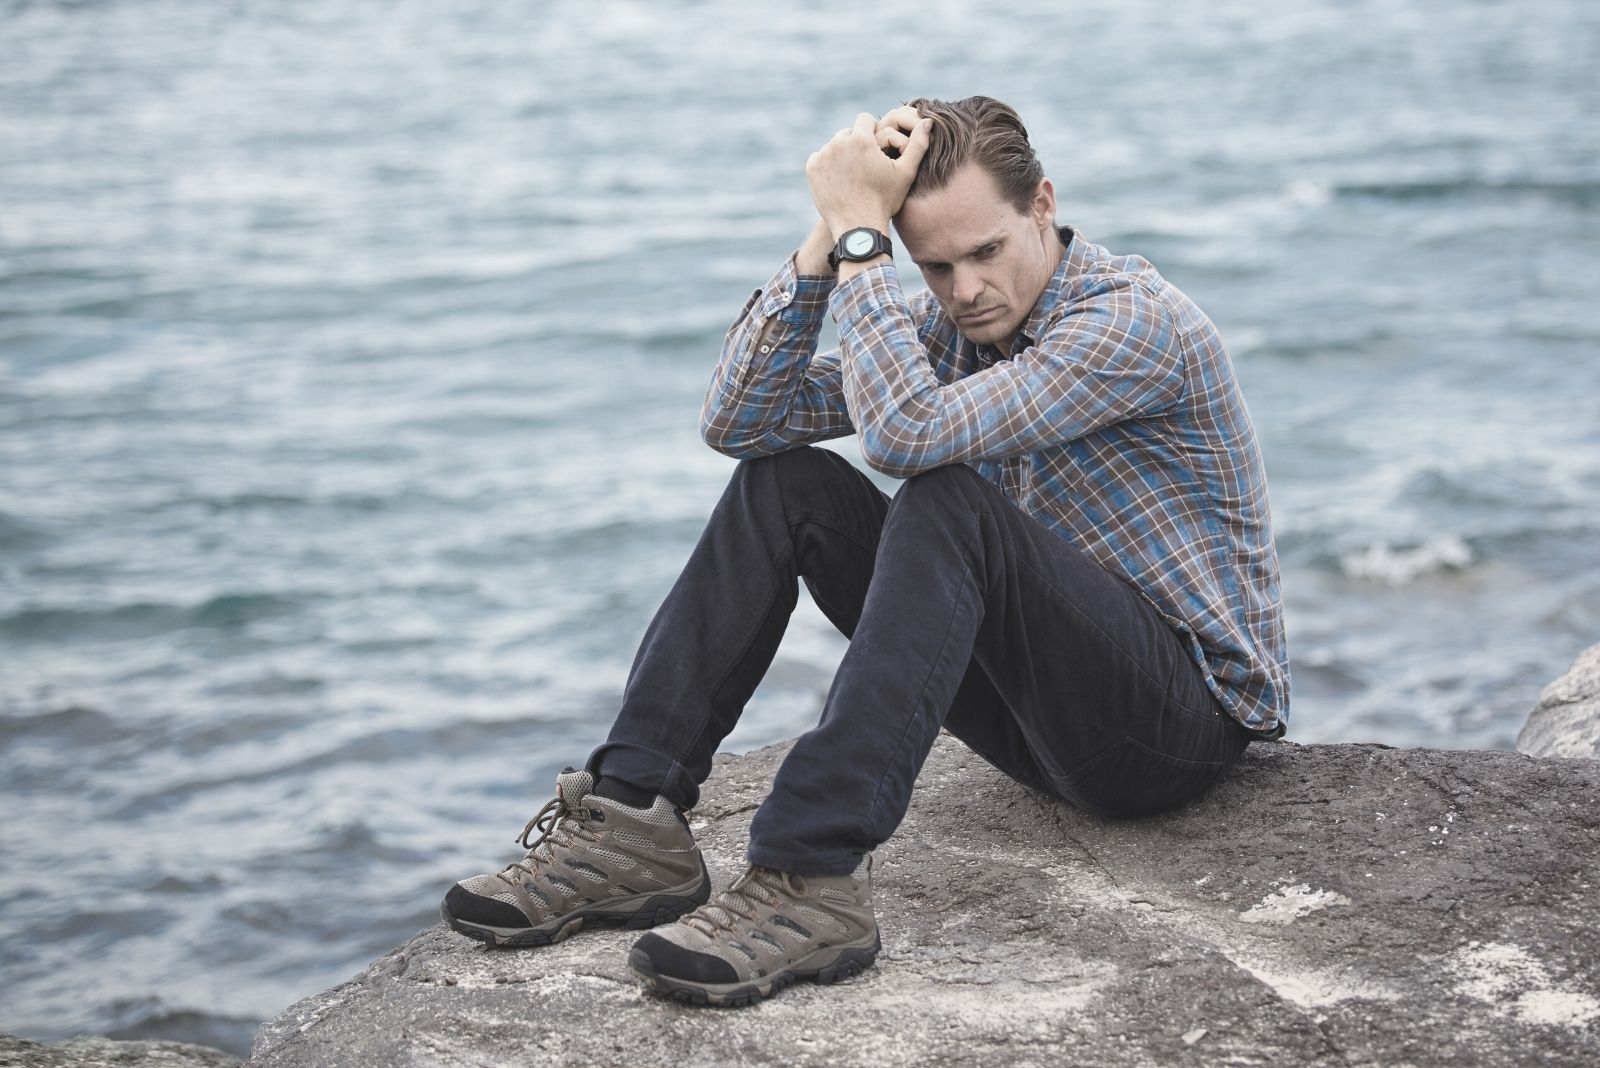 man sitting on the rock near the body of water wearing blue and maroon plaid shirt